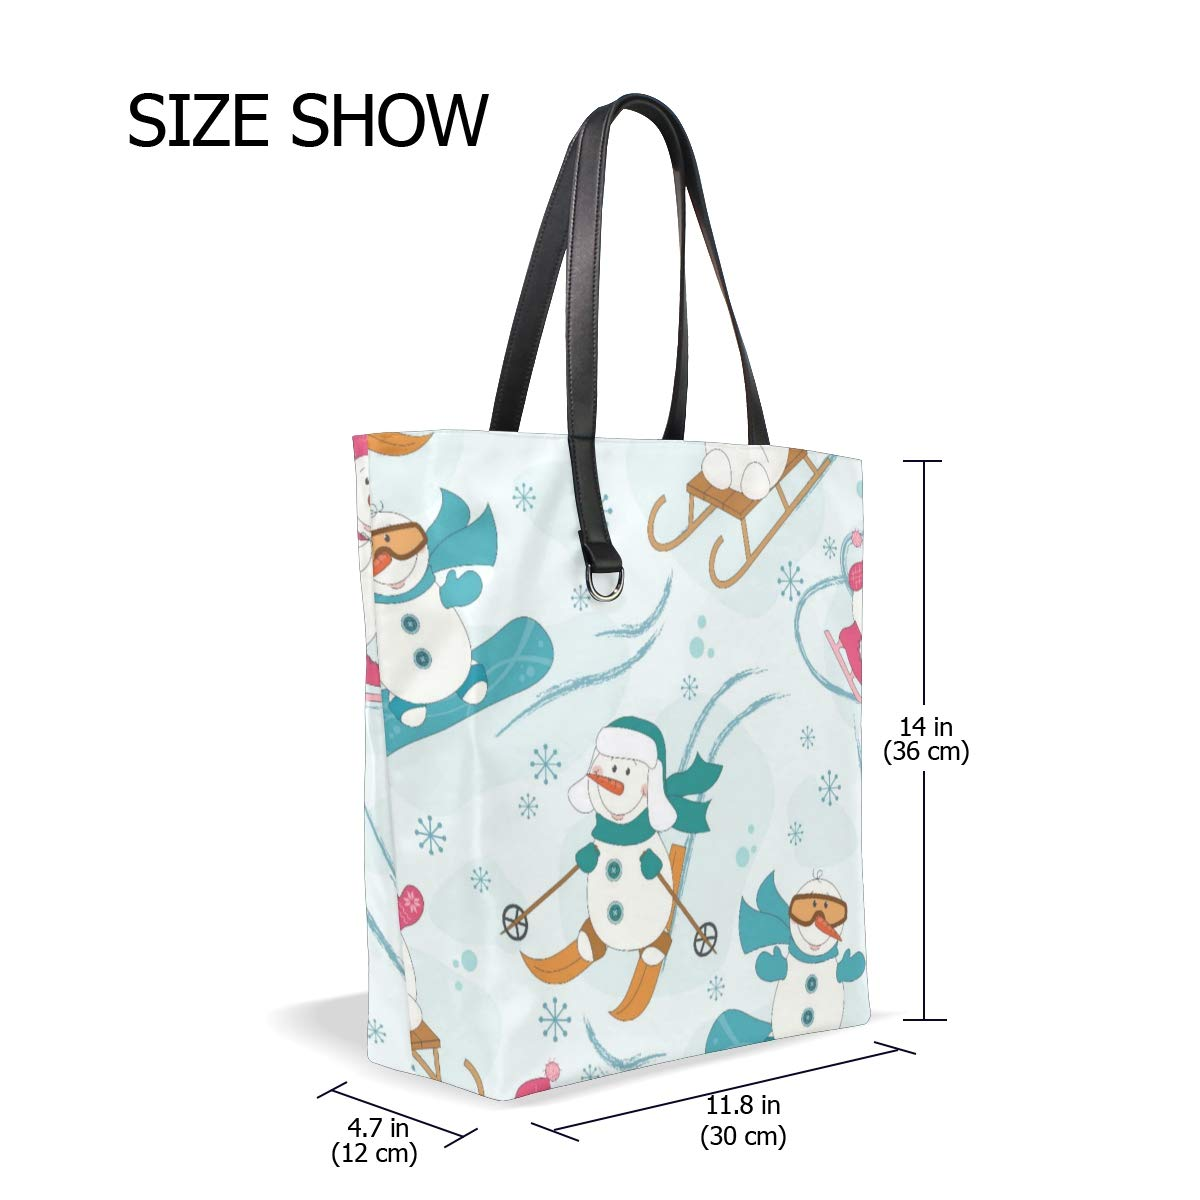 SHANGLONG Classic Simple Underwater World Marine Fish Blue Leather Tote Bag Casual Bag Purse Handbag for Women Girls